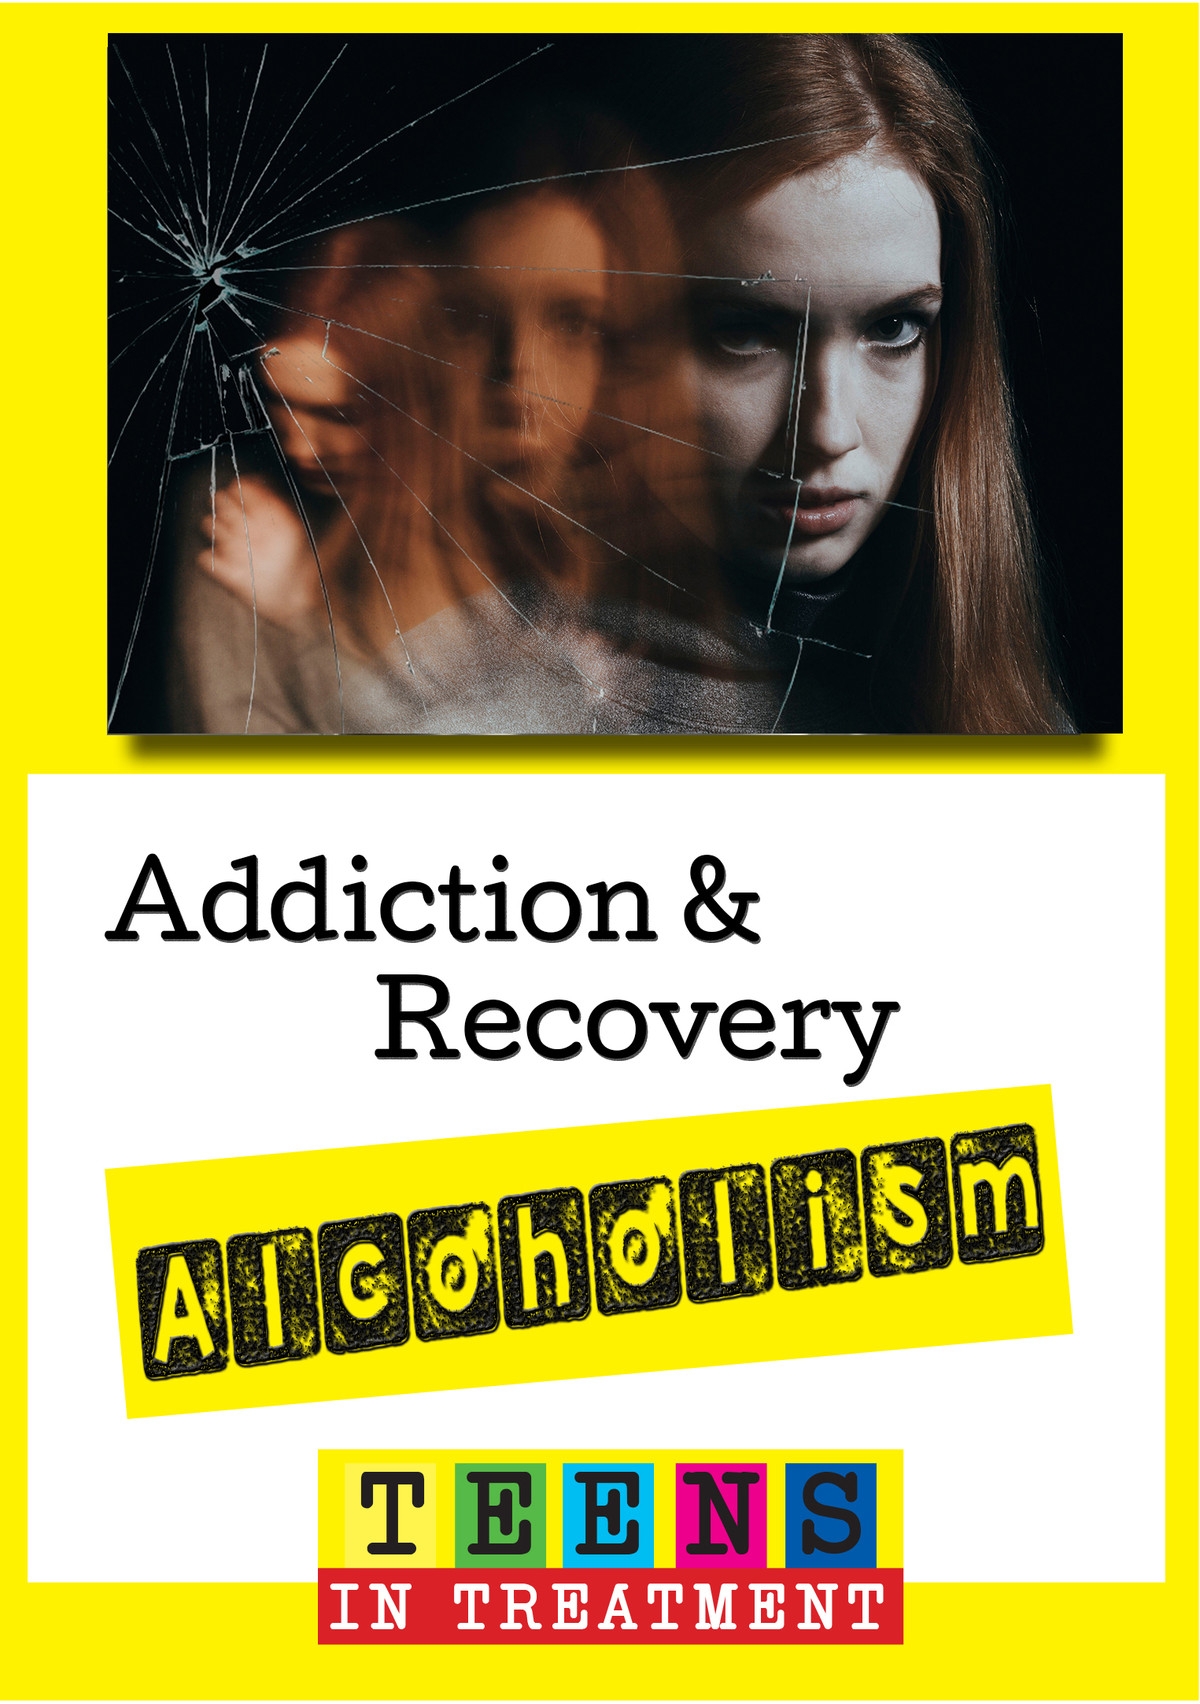 Q517 - Alcohol Addiction & Recovery